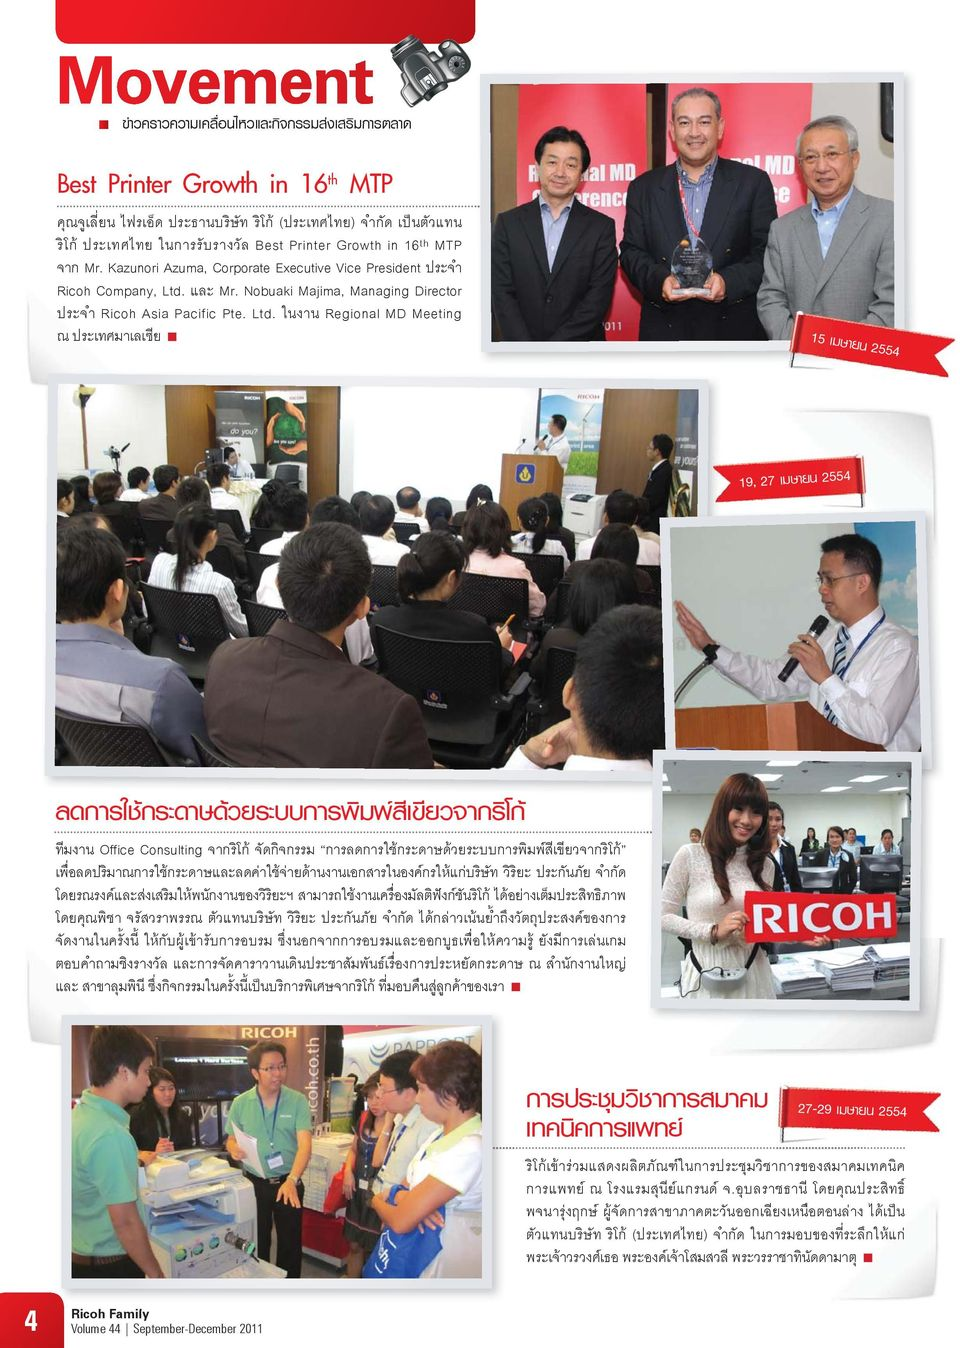 และ Mr. Nobuaki Majima, Managing Director ประจำ Ricoh Asia Pacific Pte. Ltd.